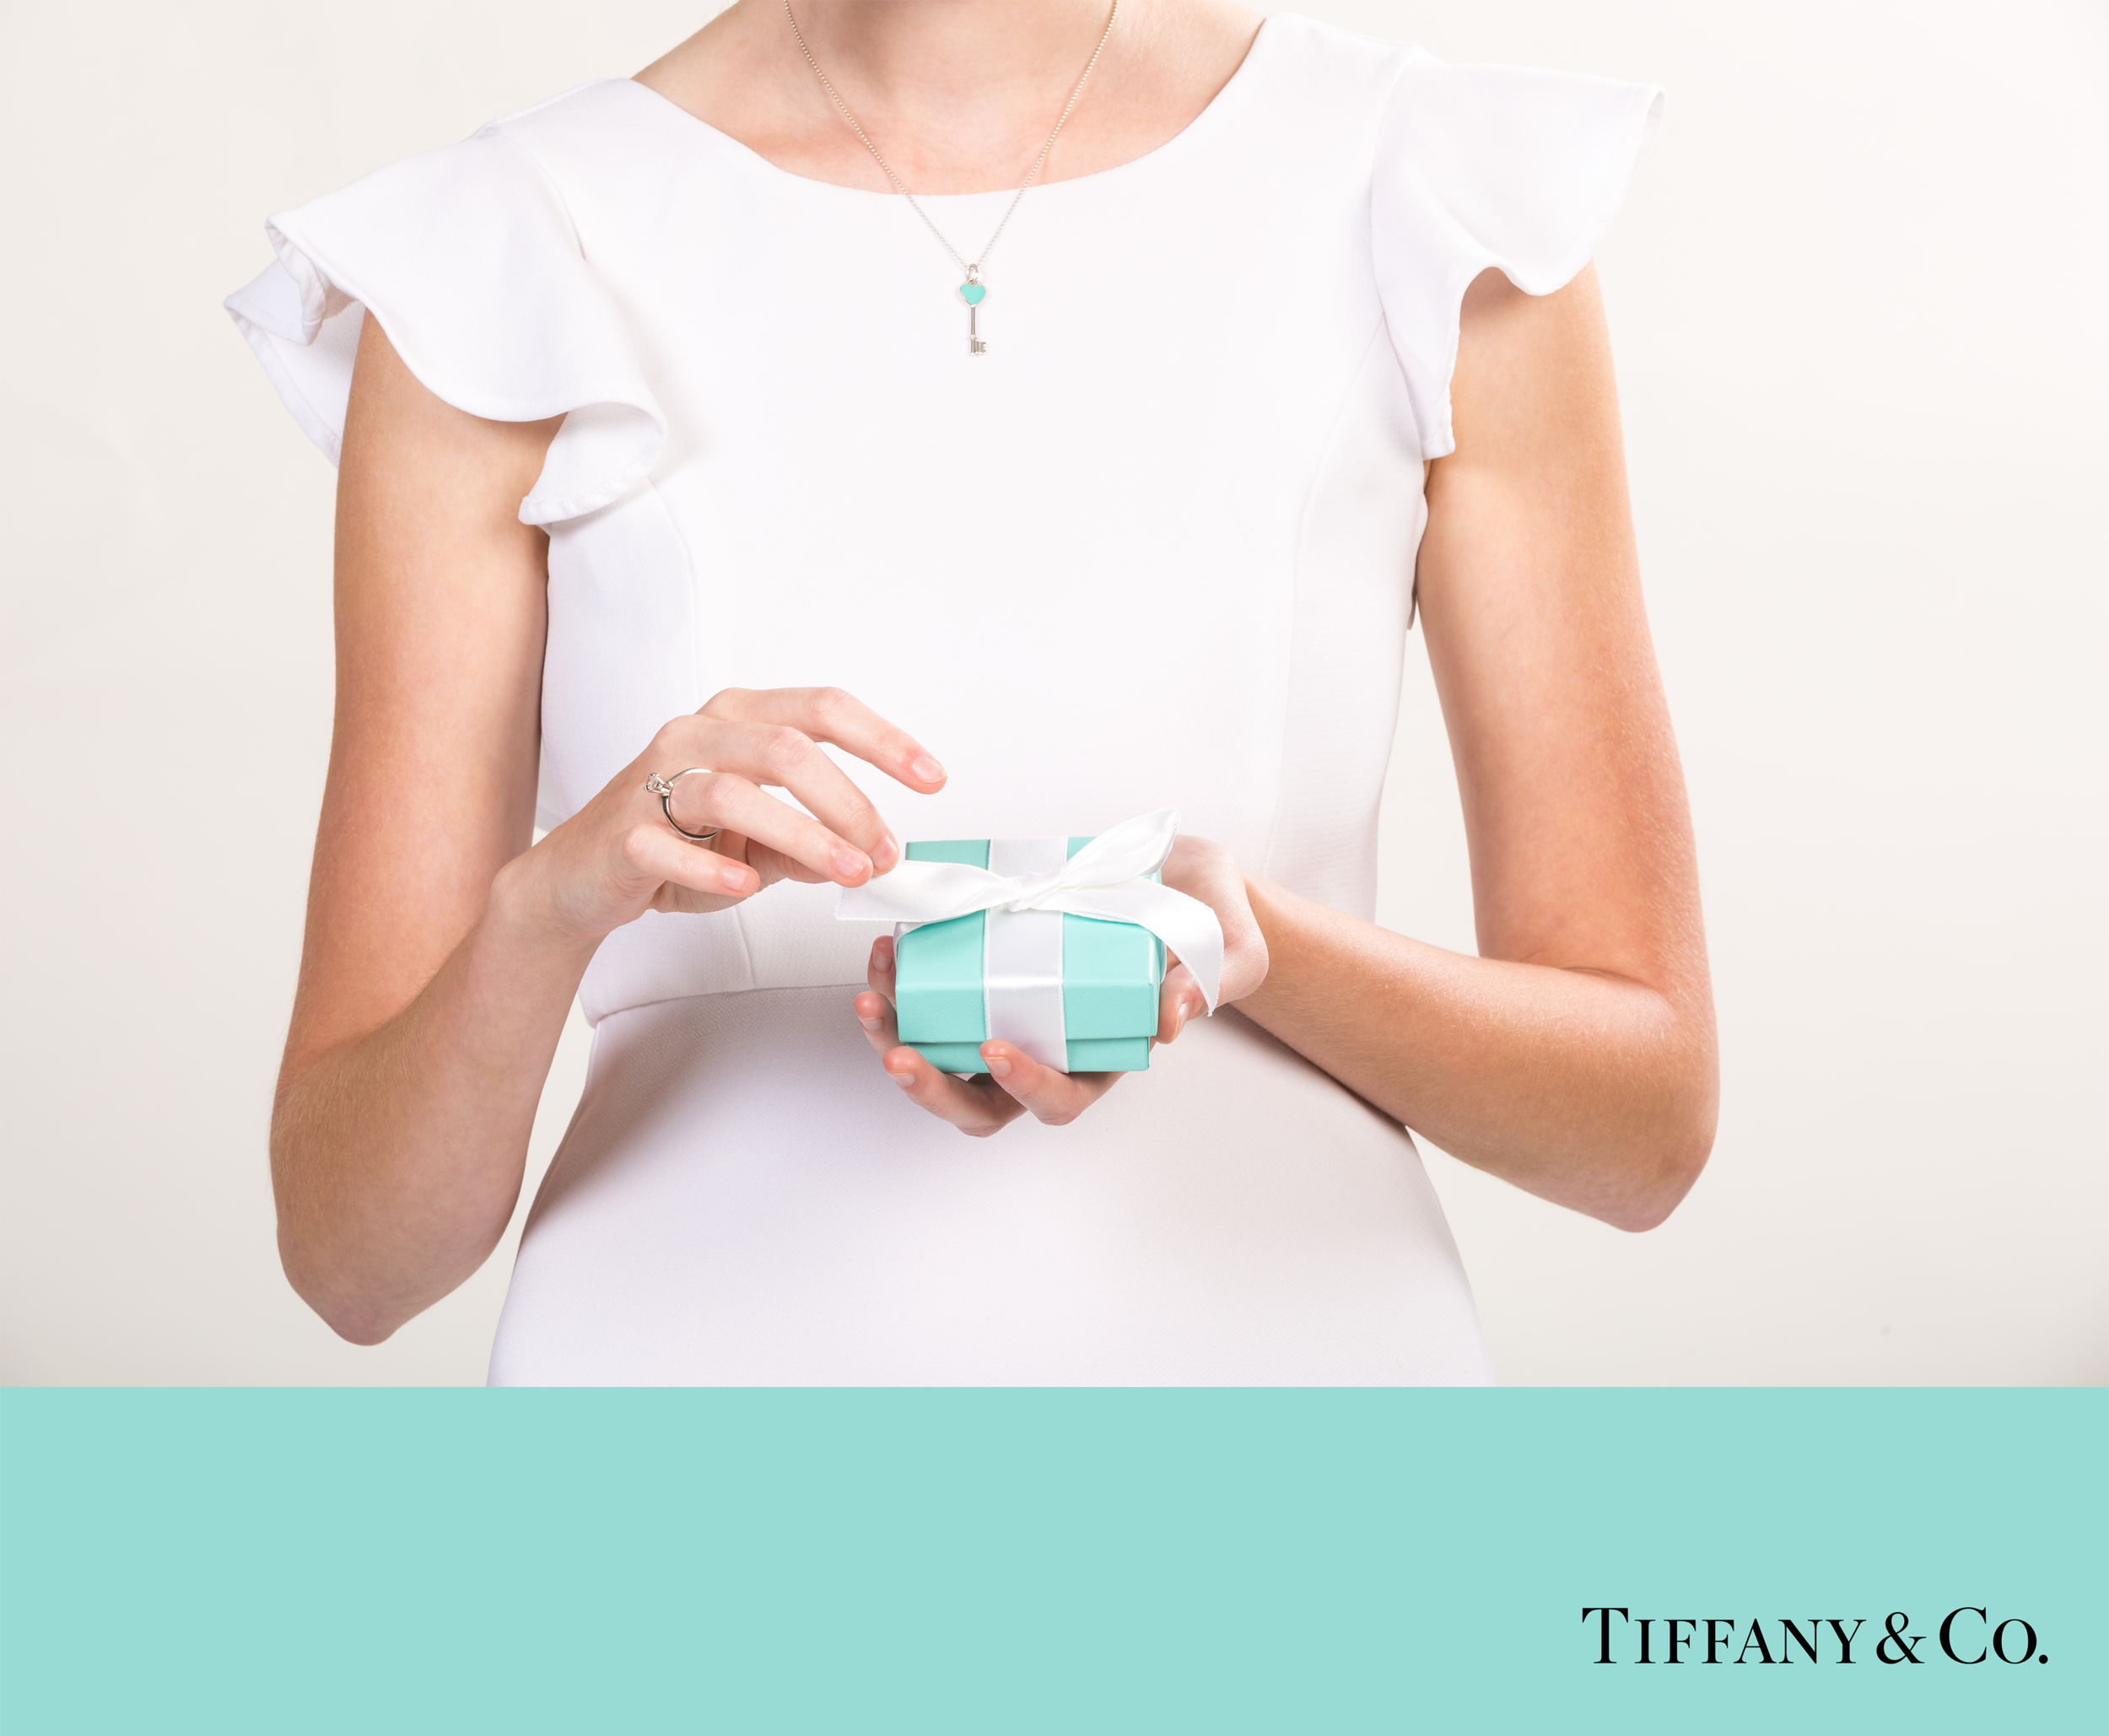 tiffany and co advertisement copy copy.png